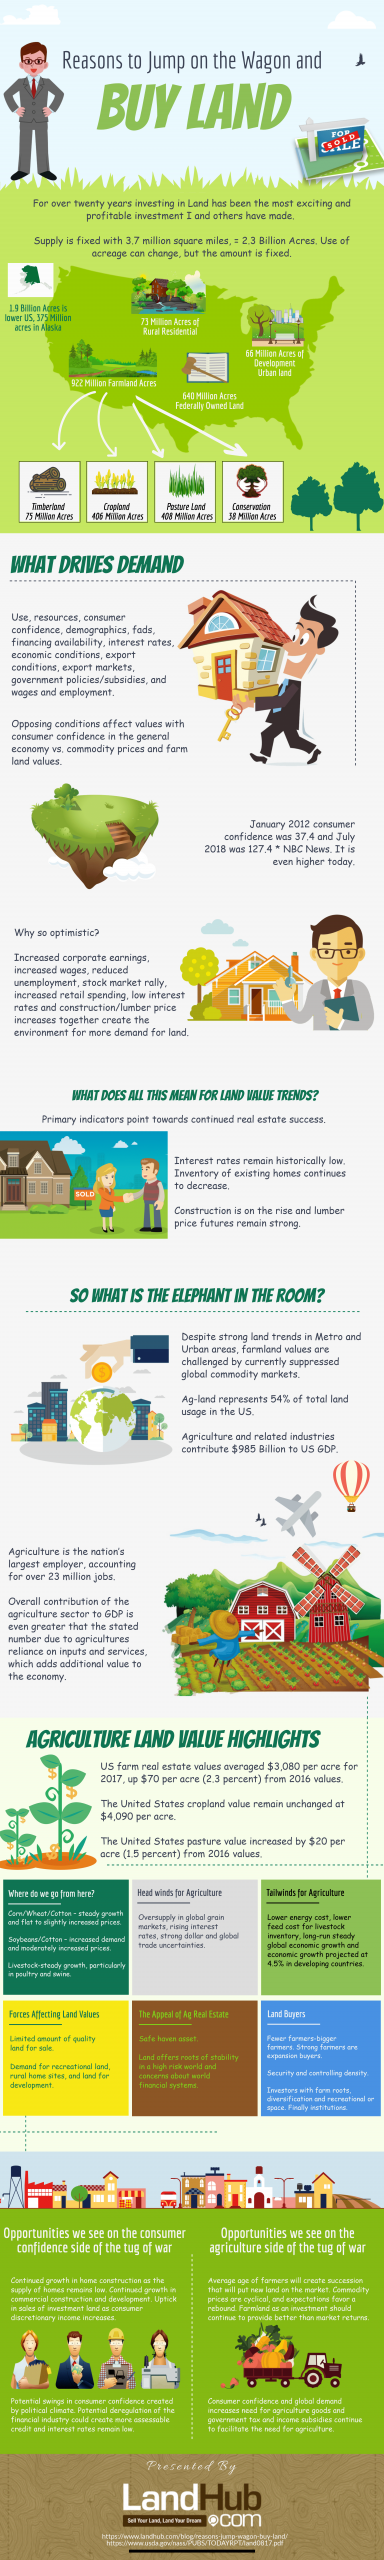 Infographic Reasons Land is a Attractive Investment Option in the US